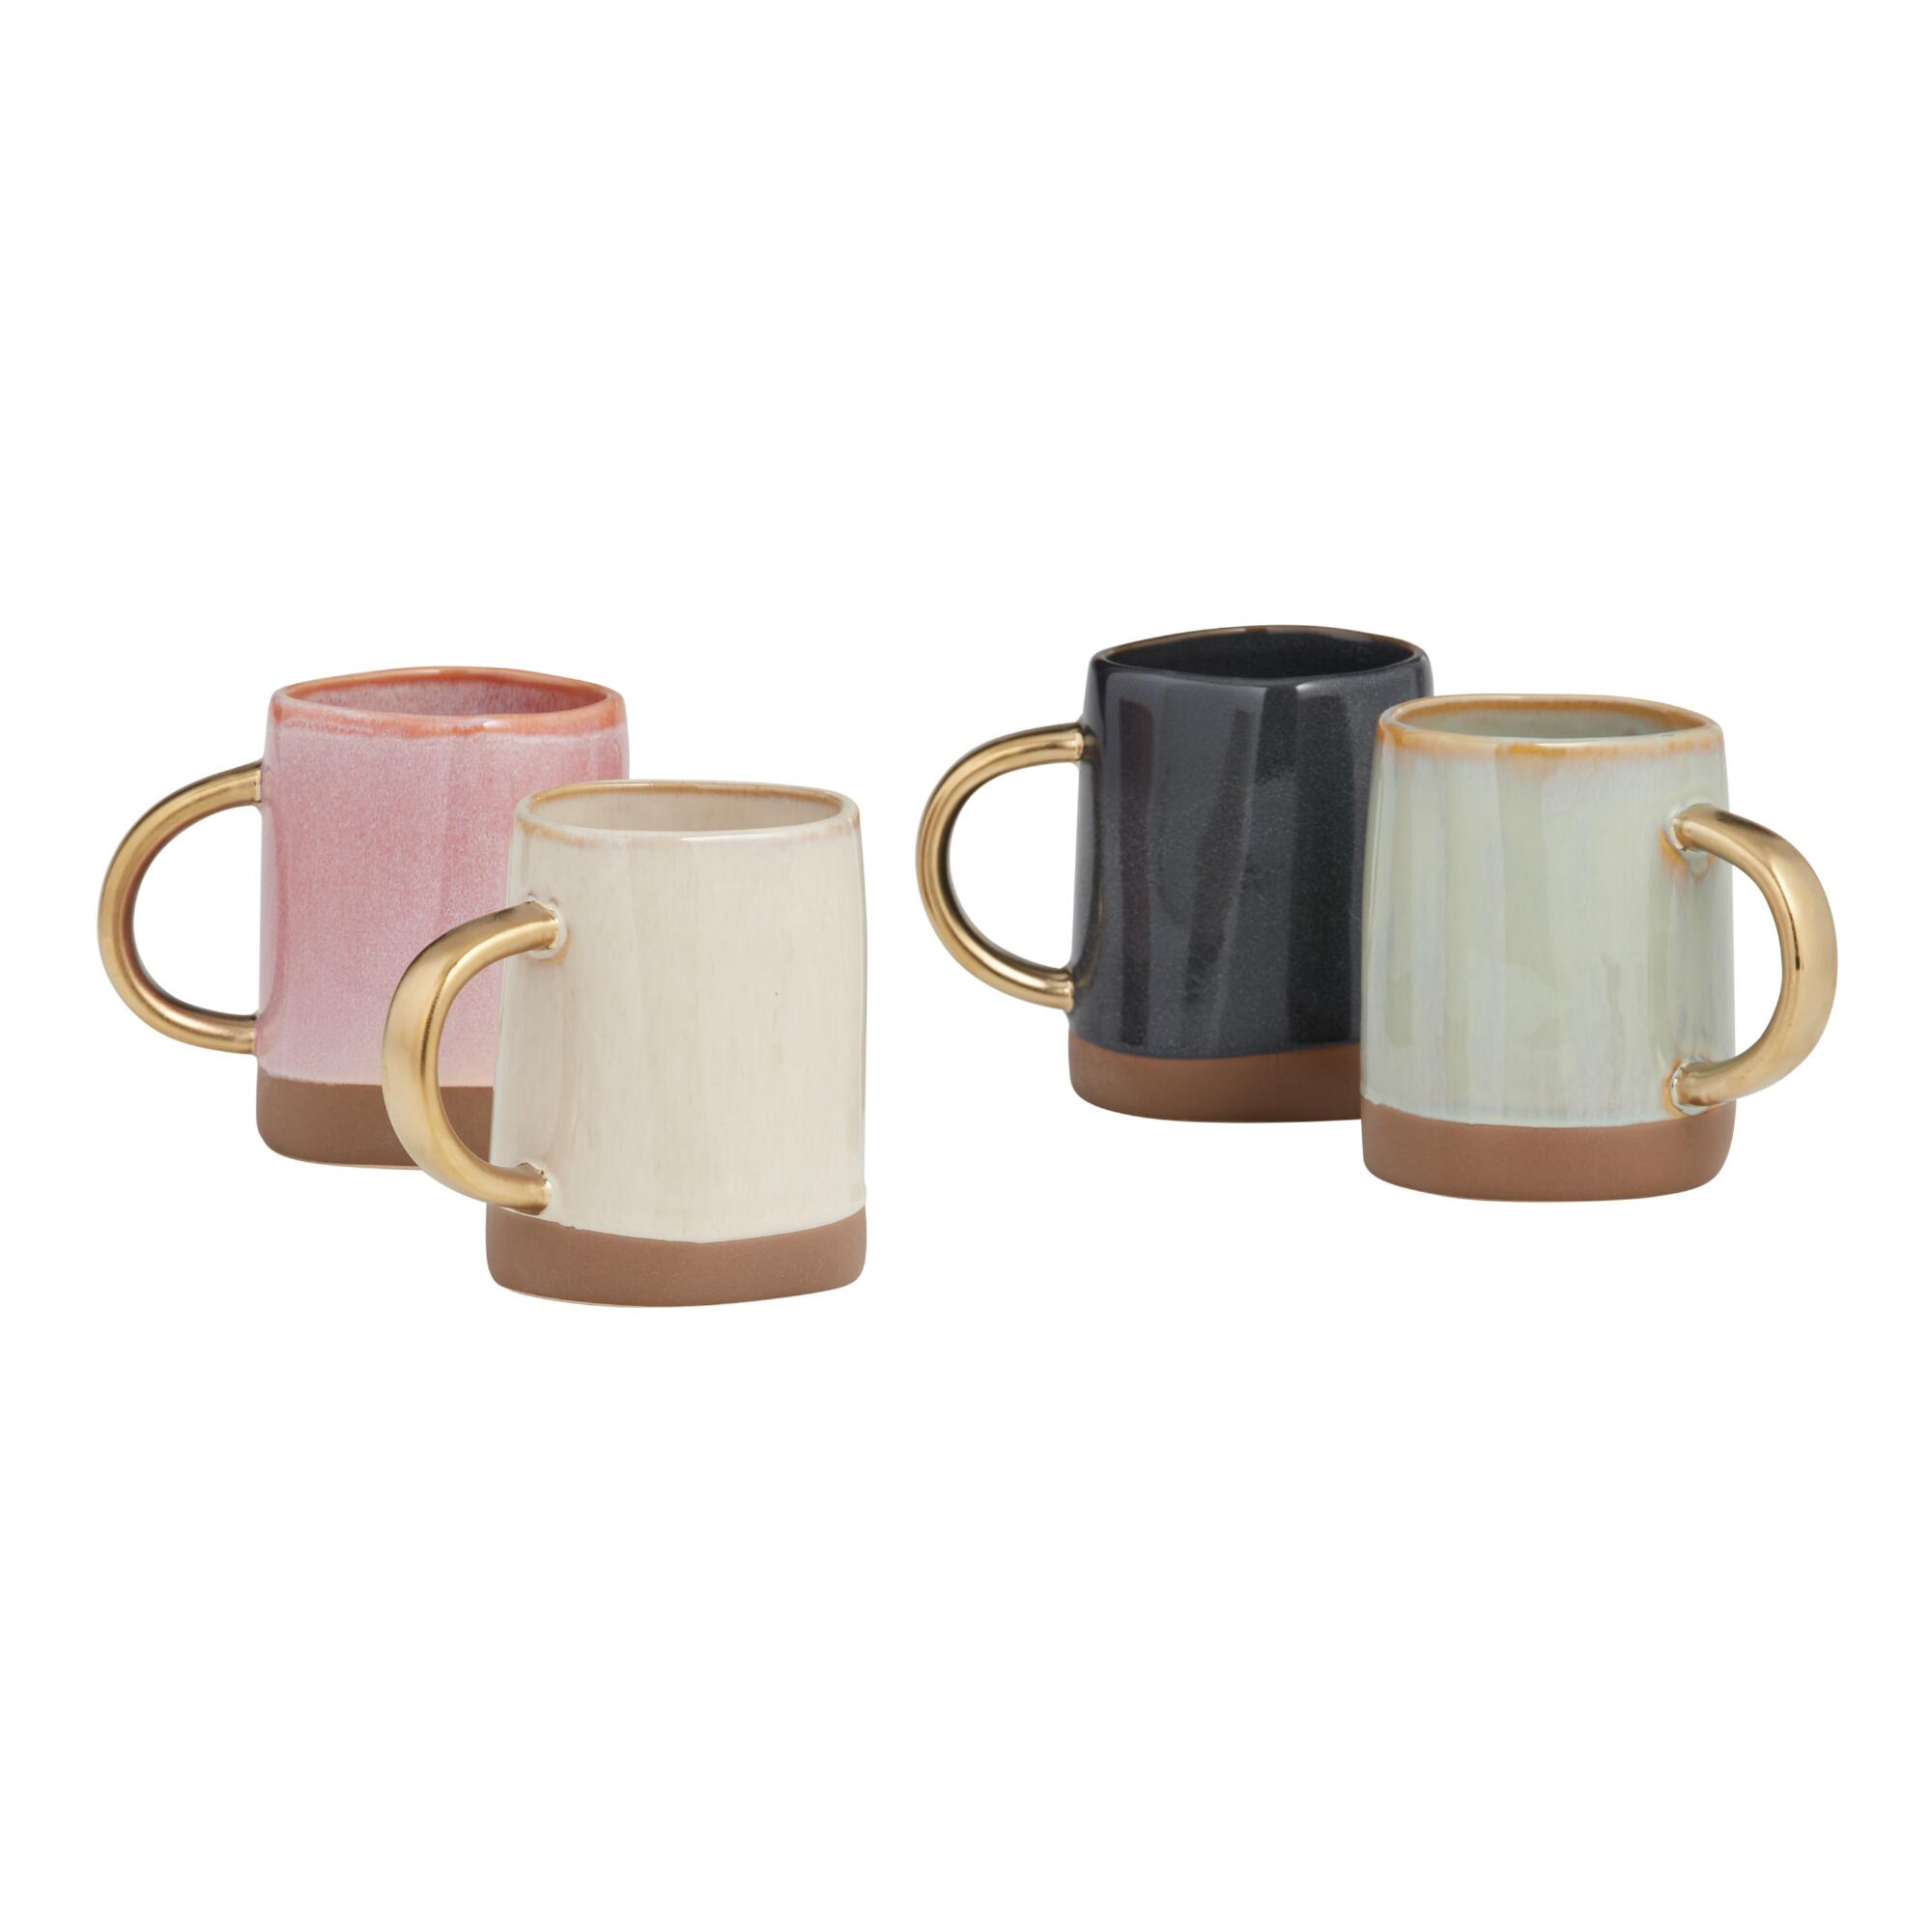 Dipped Reactive Glaze Mugs with Gold Handles Set of 4 - Stoneware by World Market